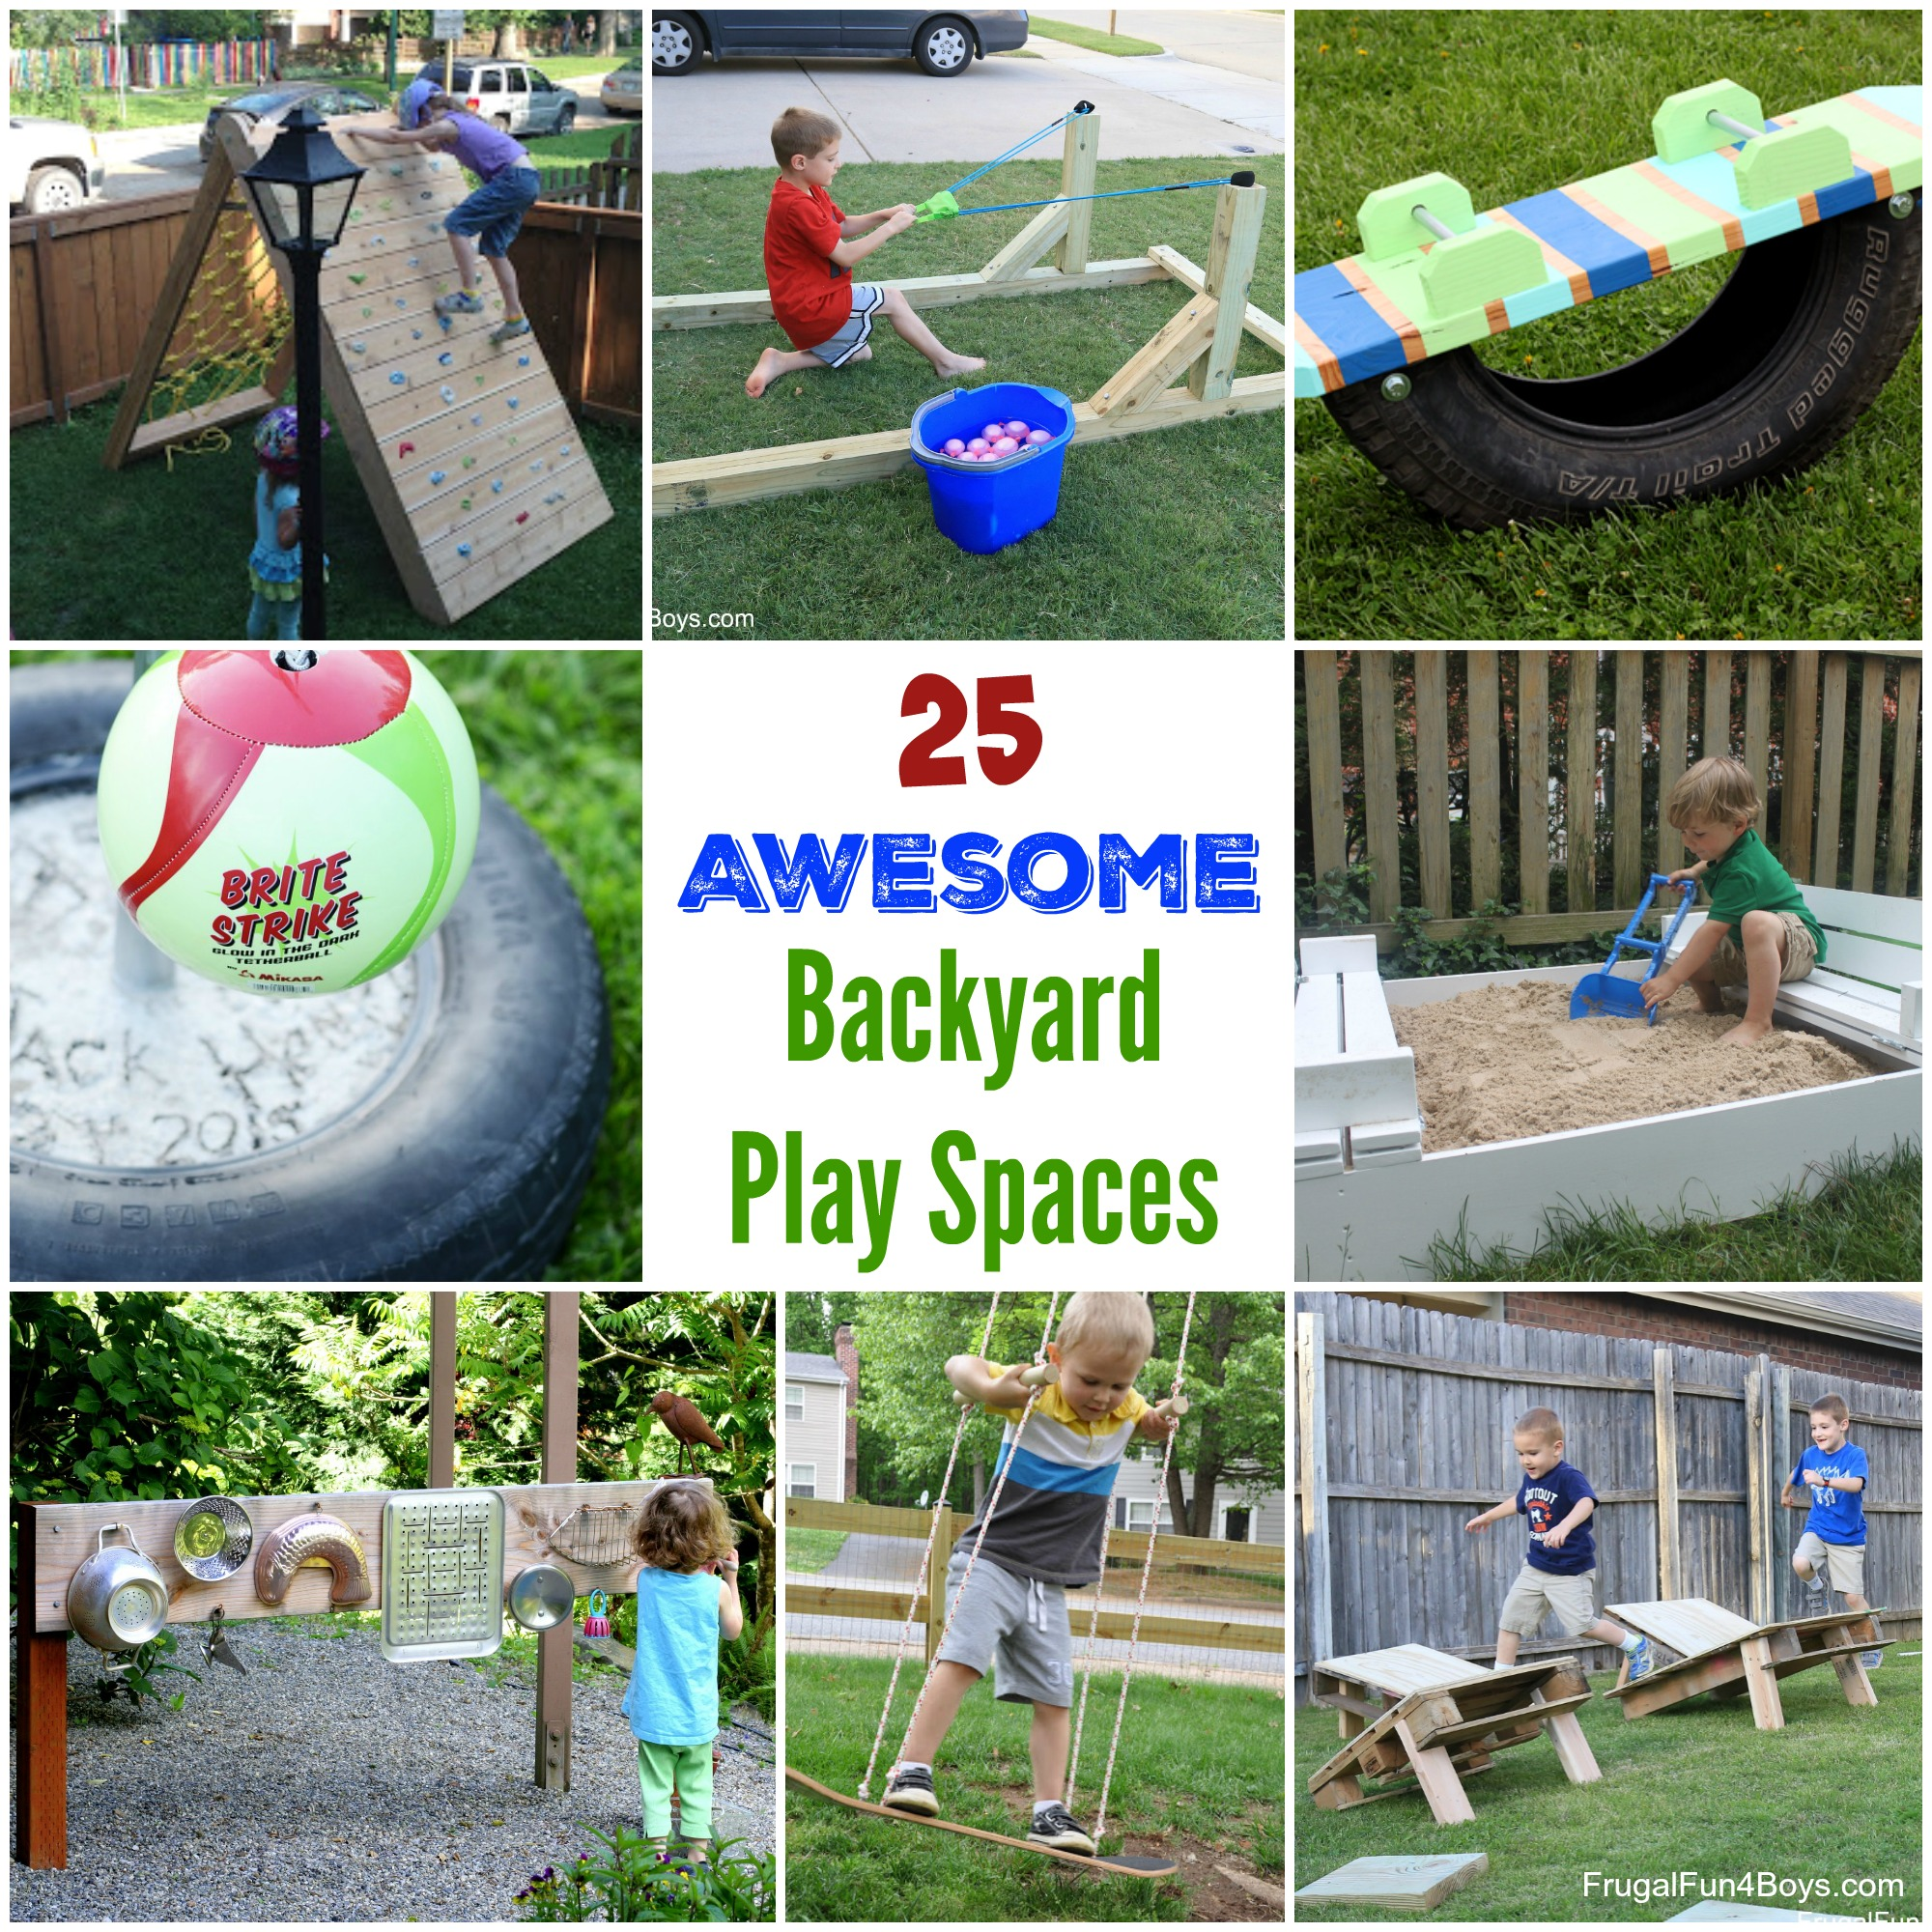 25 Awesome Backyard Play Spaces - Build climbing structures, outdoor toys, and more!